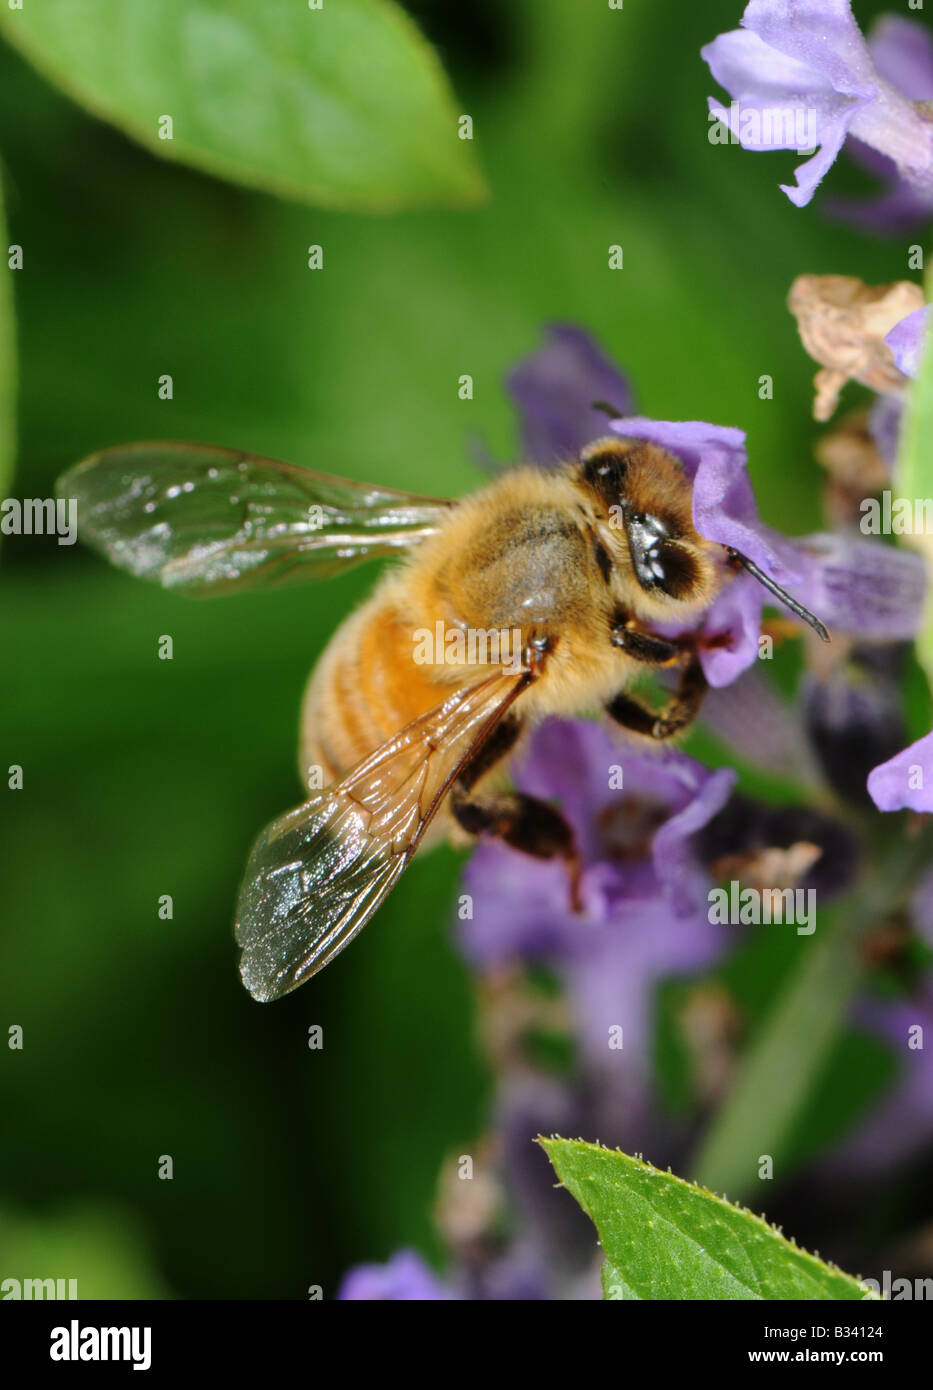 honey bee foraging on lavender - Stock Image